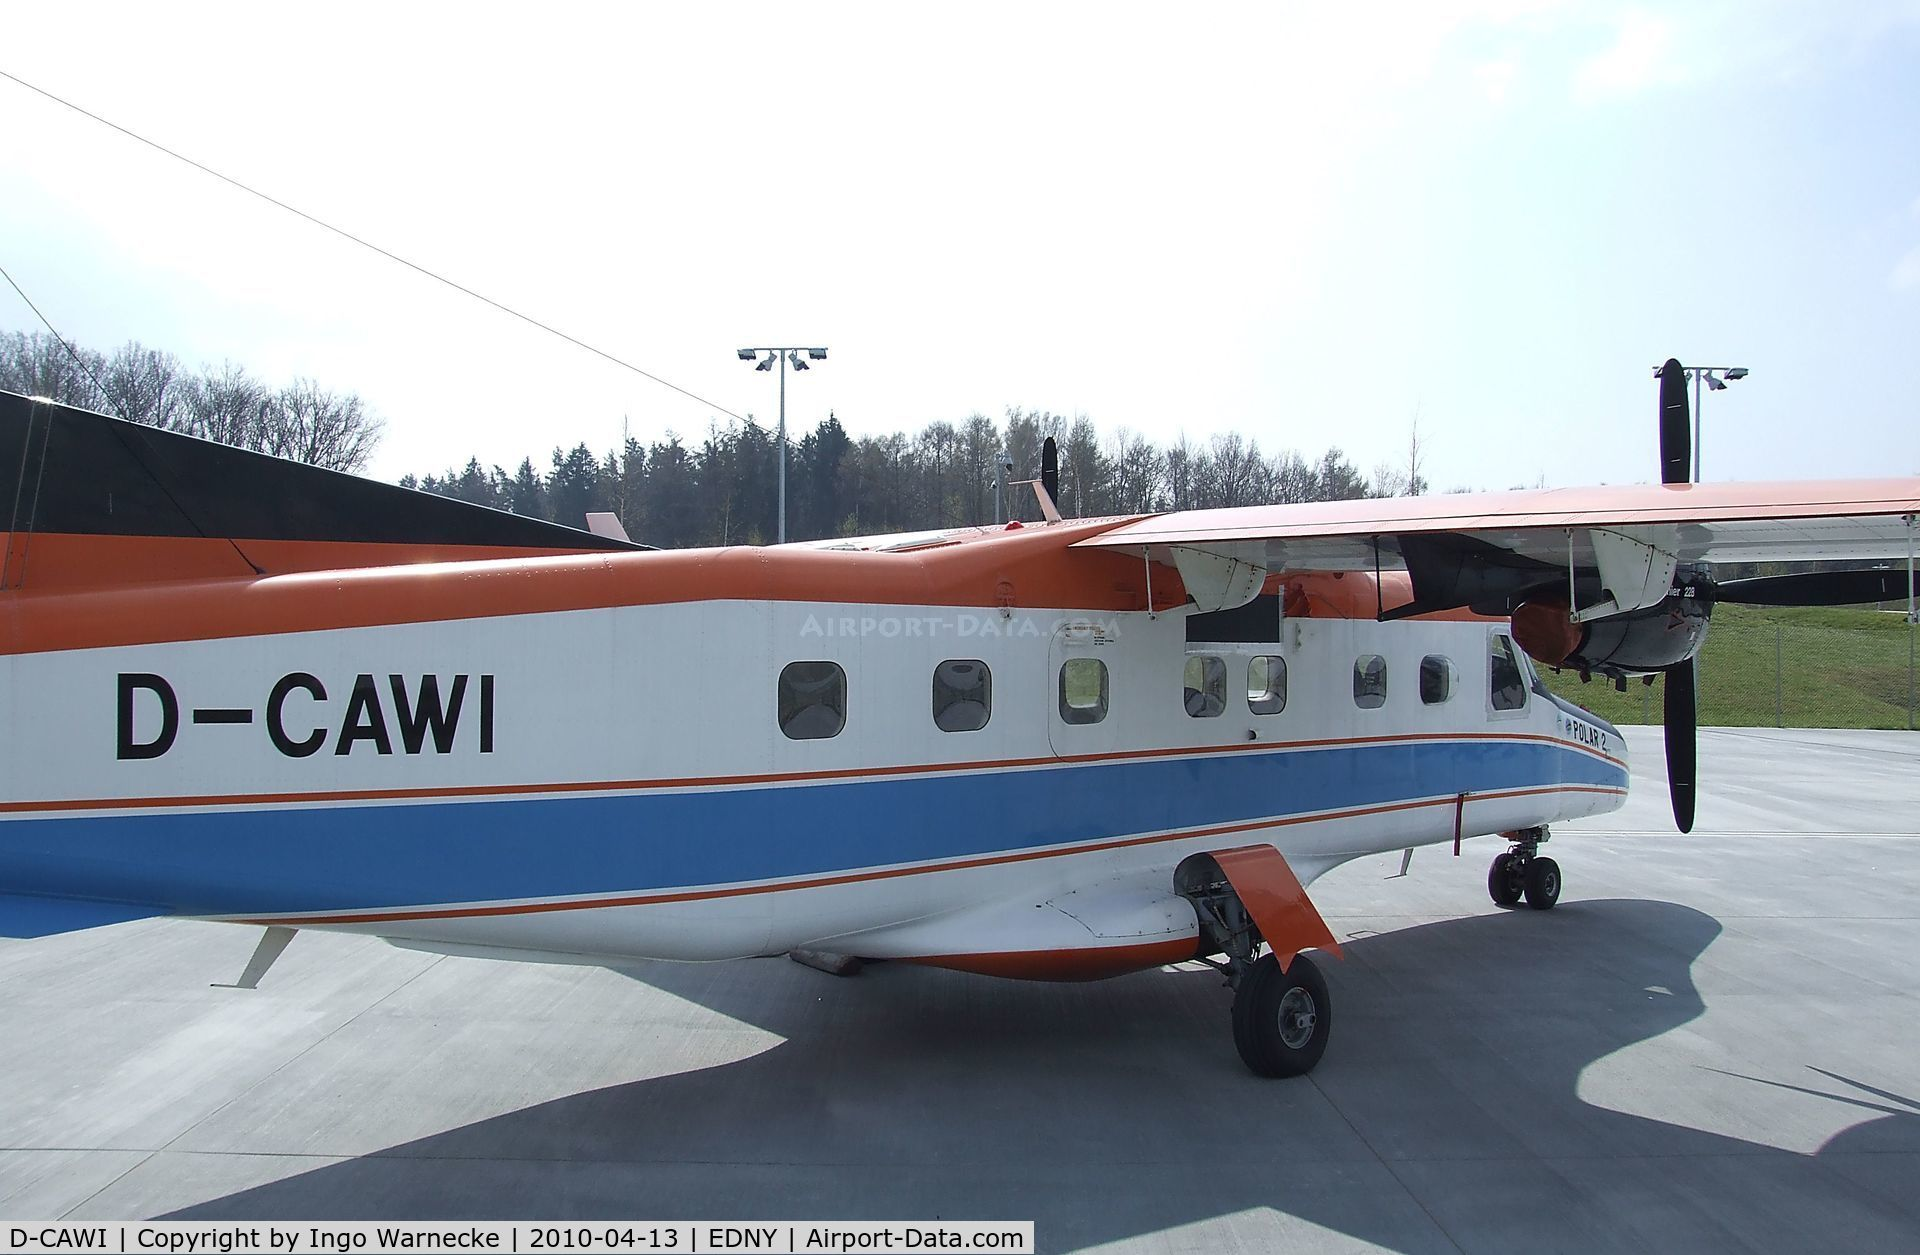 D-CAWI, 1983 Dornier 228-101 C/N 7014, Dornier Do 228-101 (formerly 'POLAR 2' operated by the German polar research institute (Alfred Wegener Institut)) standing outside the Dornier-Museum to be sold in May 2010. Before it had been exhibited at the Dornier Museum for some months.